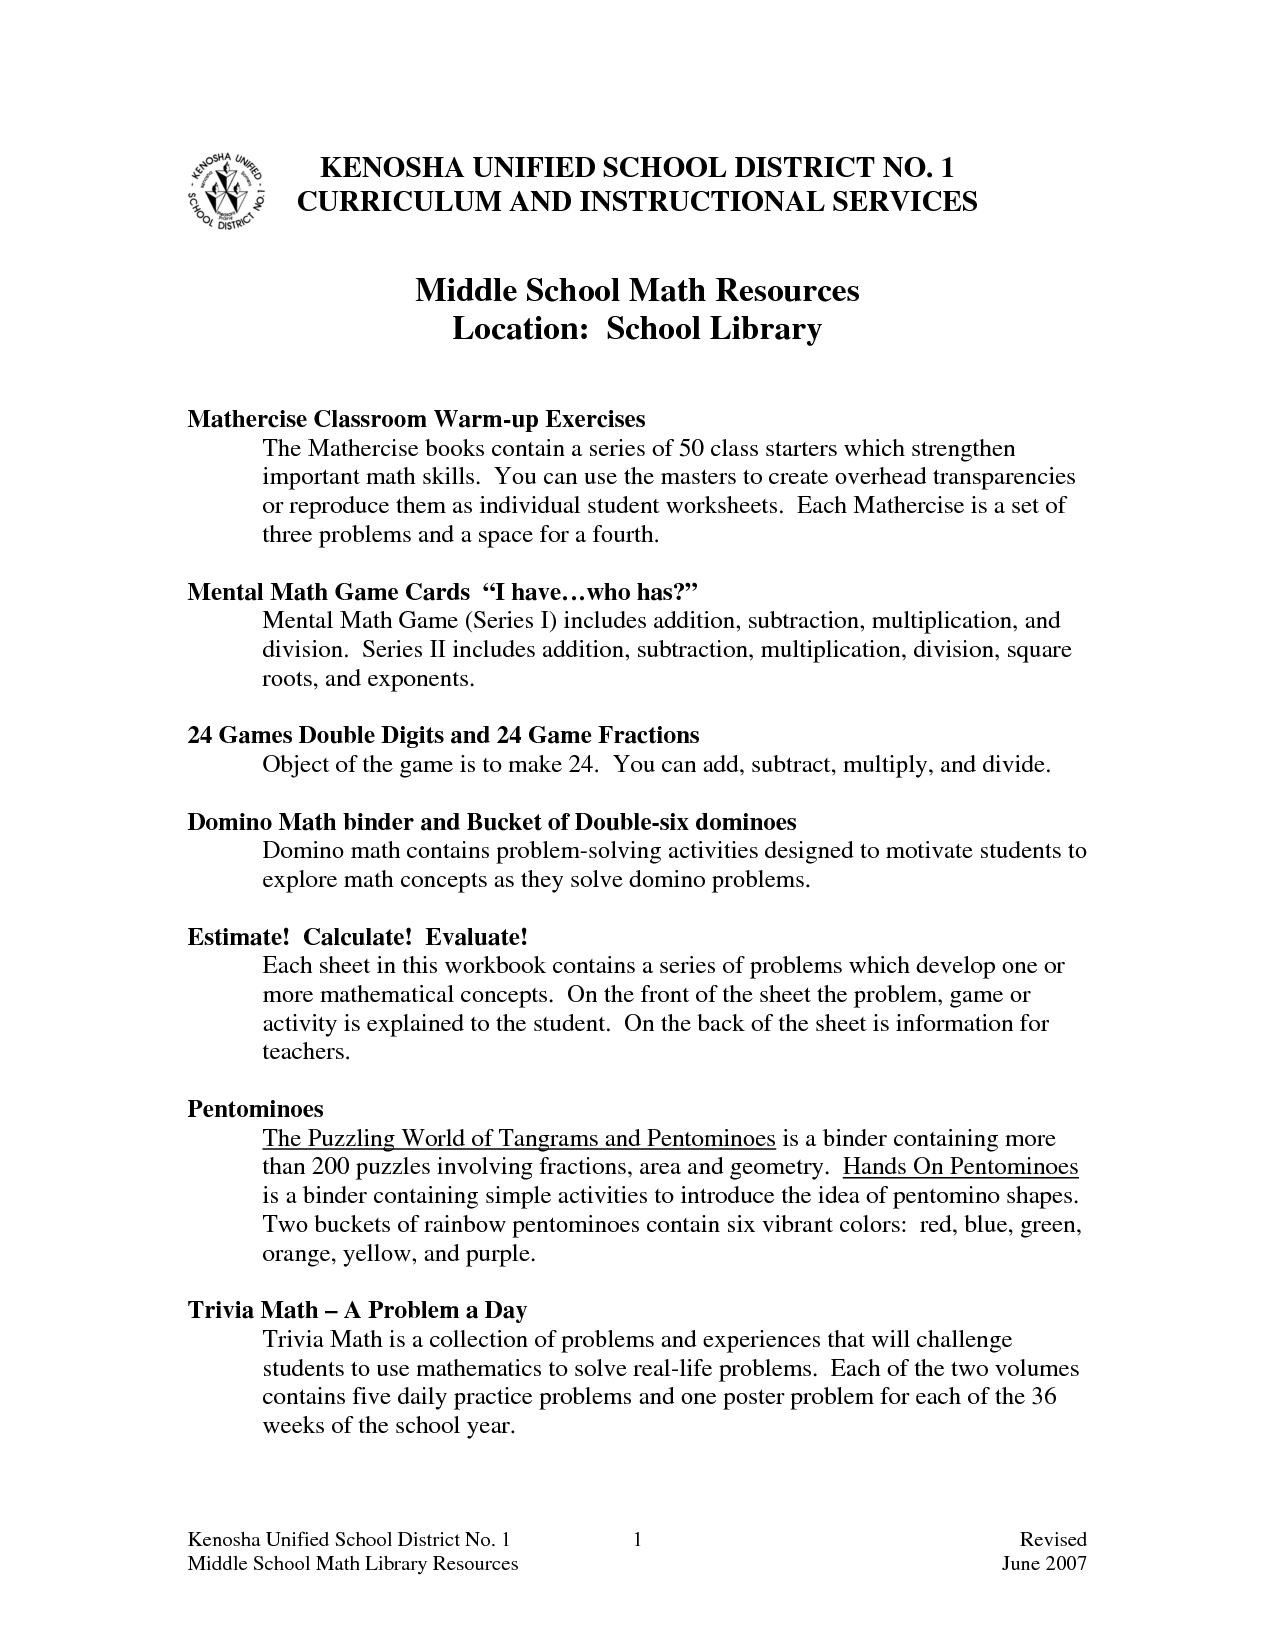 Preamble Worksheet Middle School